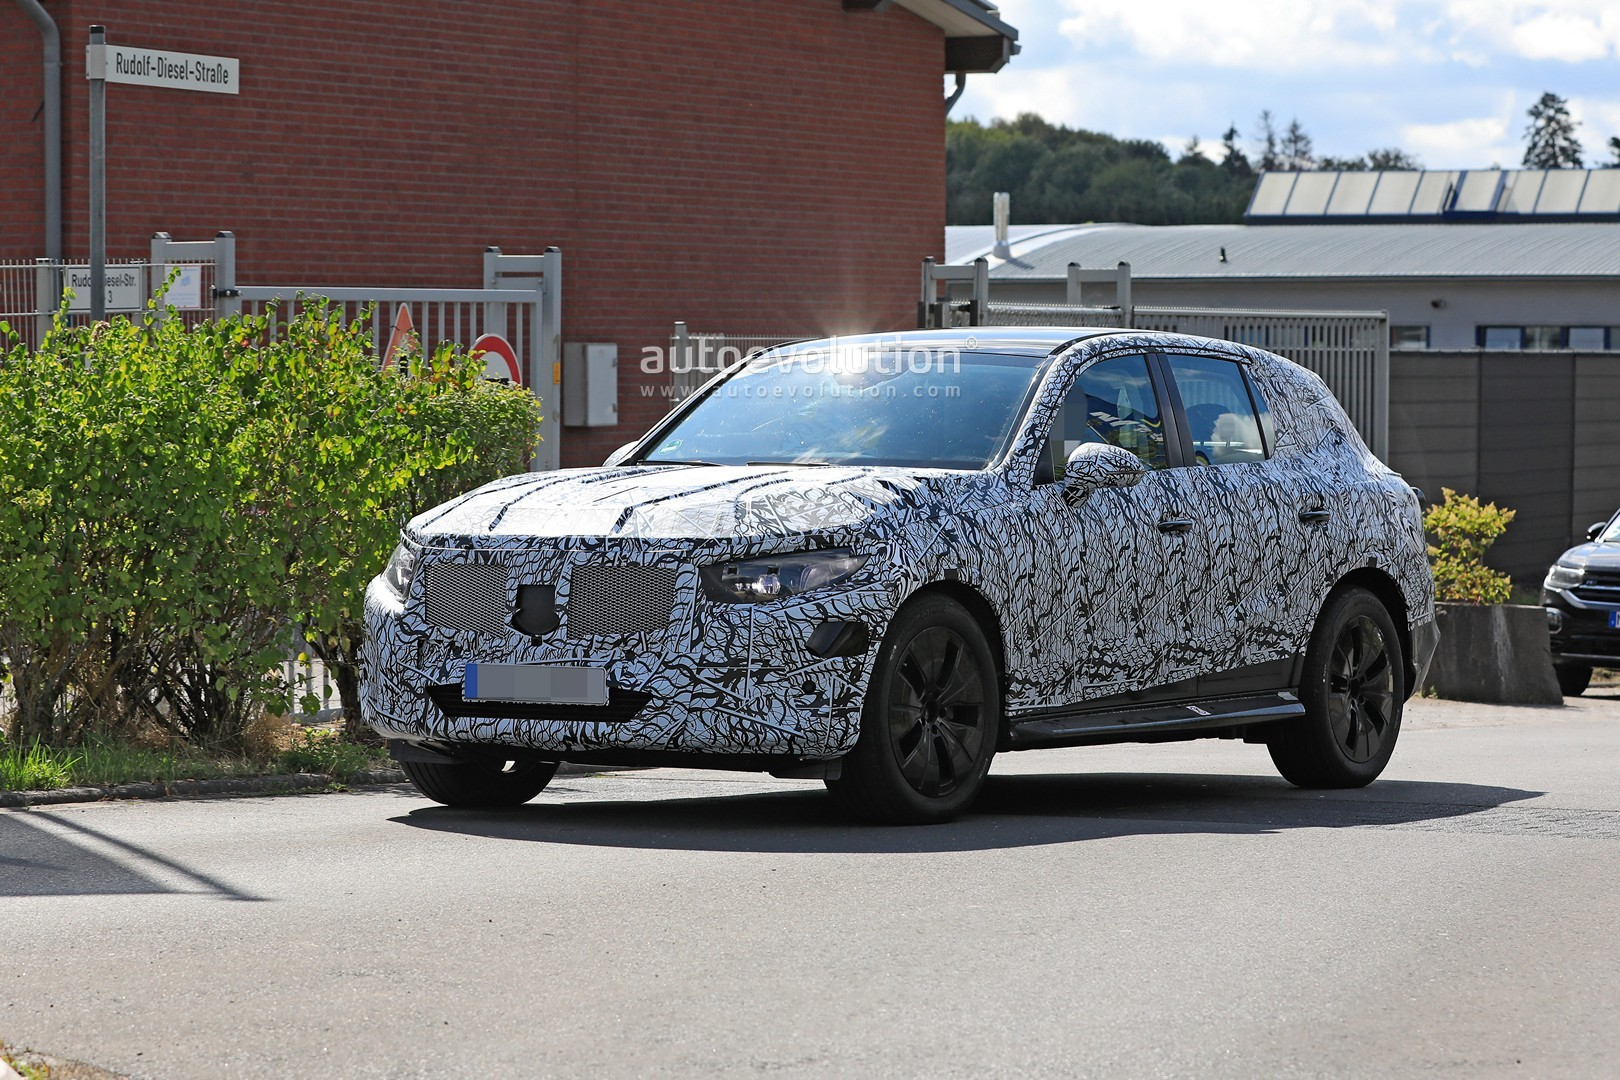 2021 - [Mercedes-Benz] GLC II - Page 2 All-new-2022-mercedes-glc-class-spied-getting-to-be-the-king-of-cuvs_3